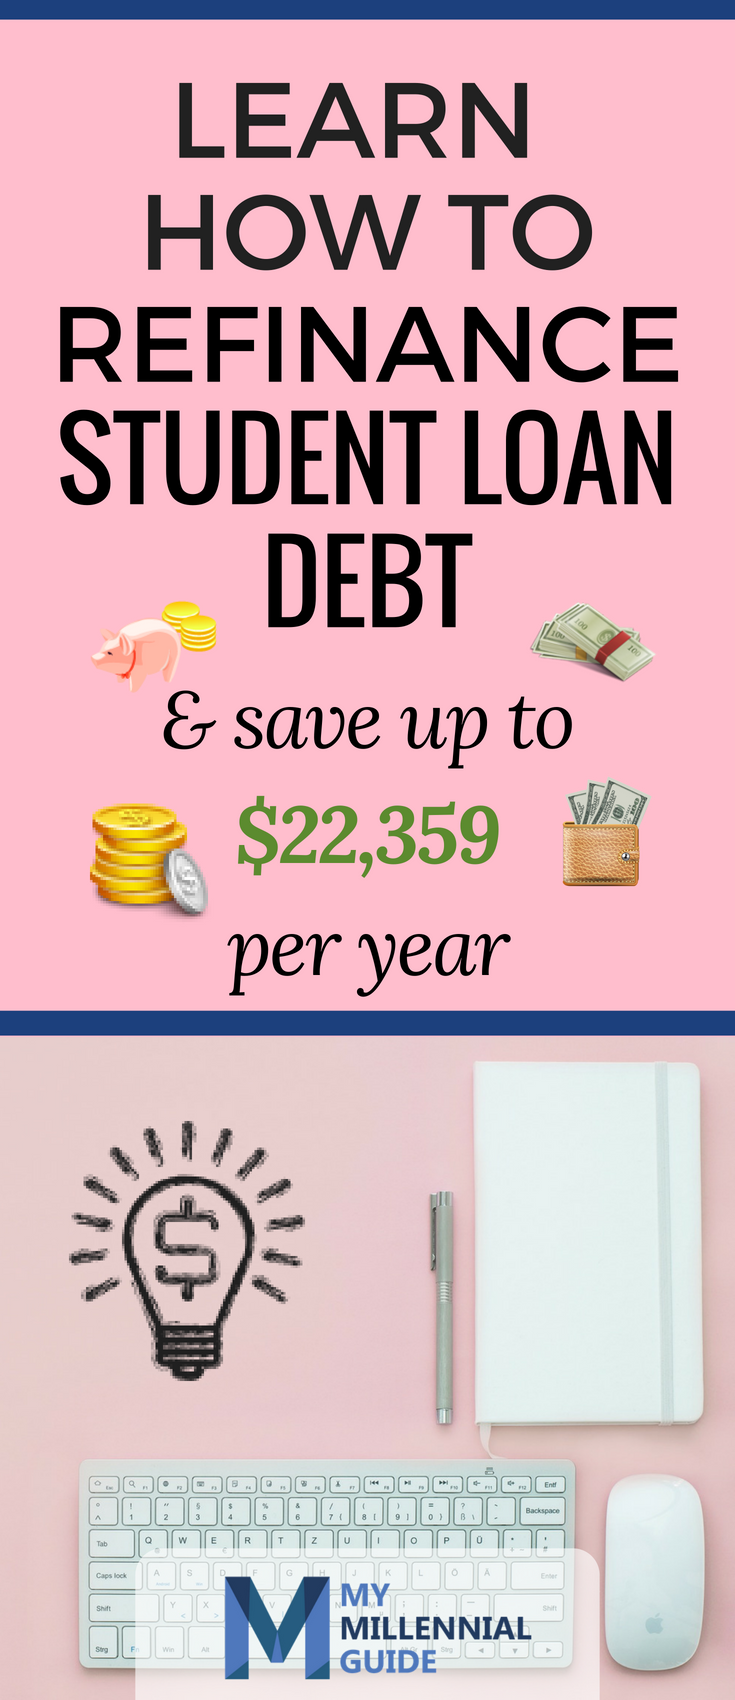 Refinance Student Loans >> Refinance Student Loans The Complete Guide 2019 Student